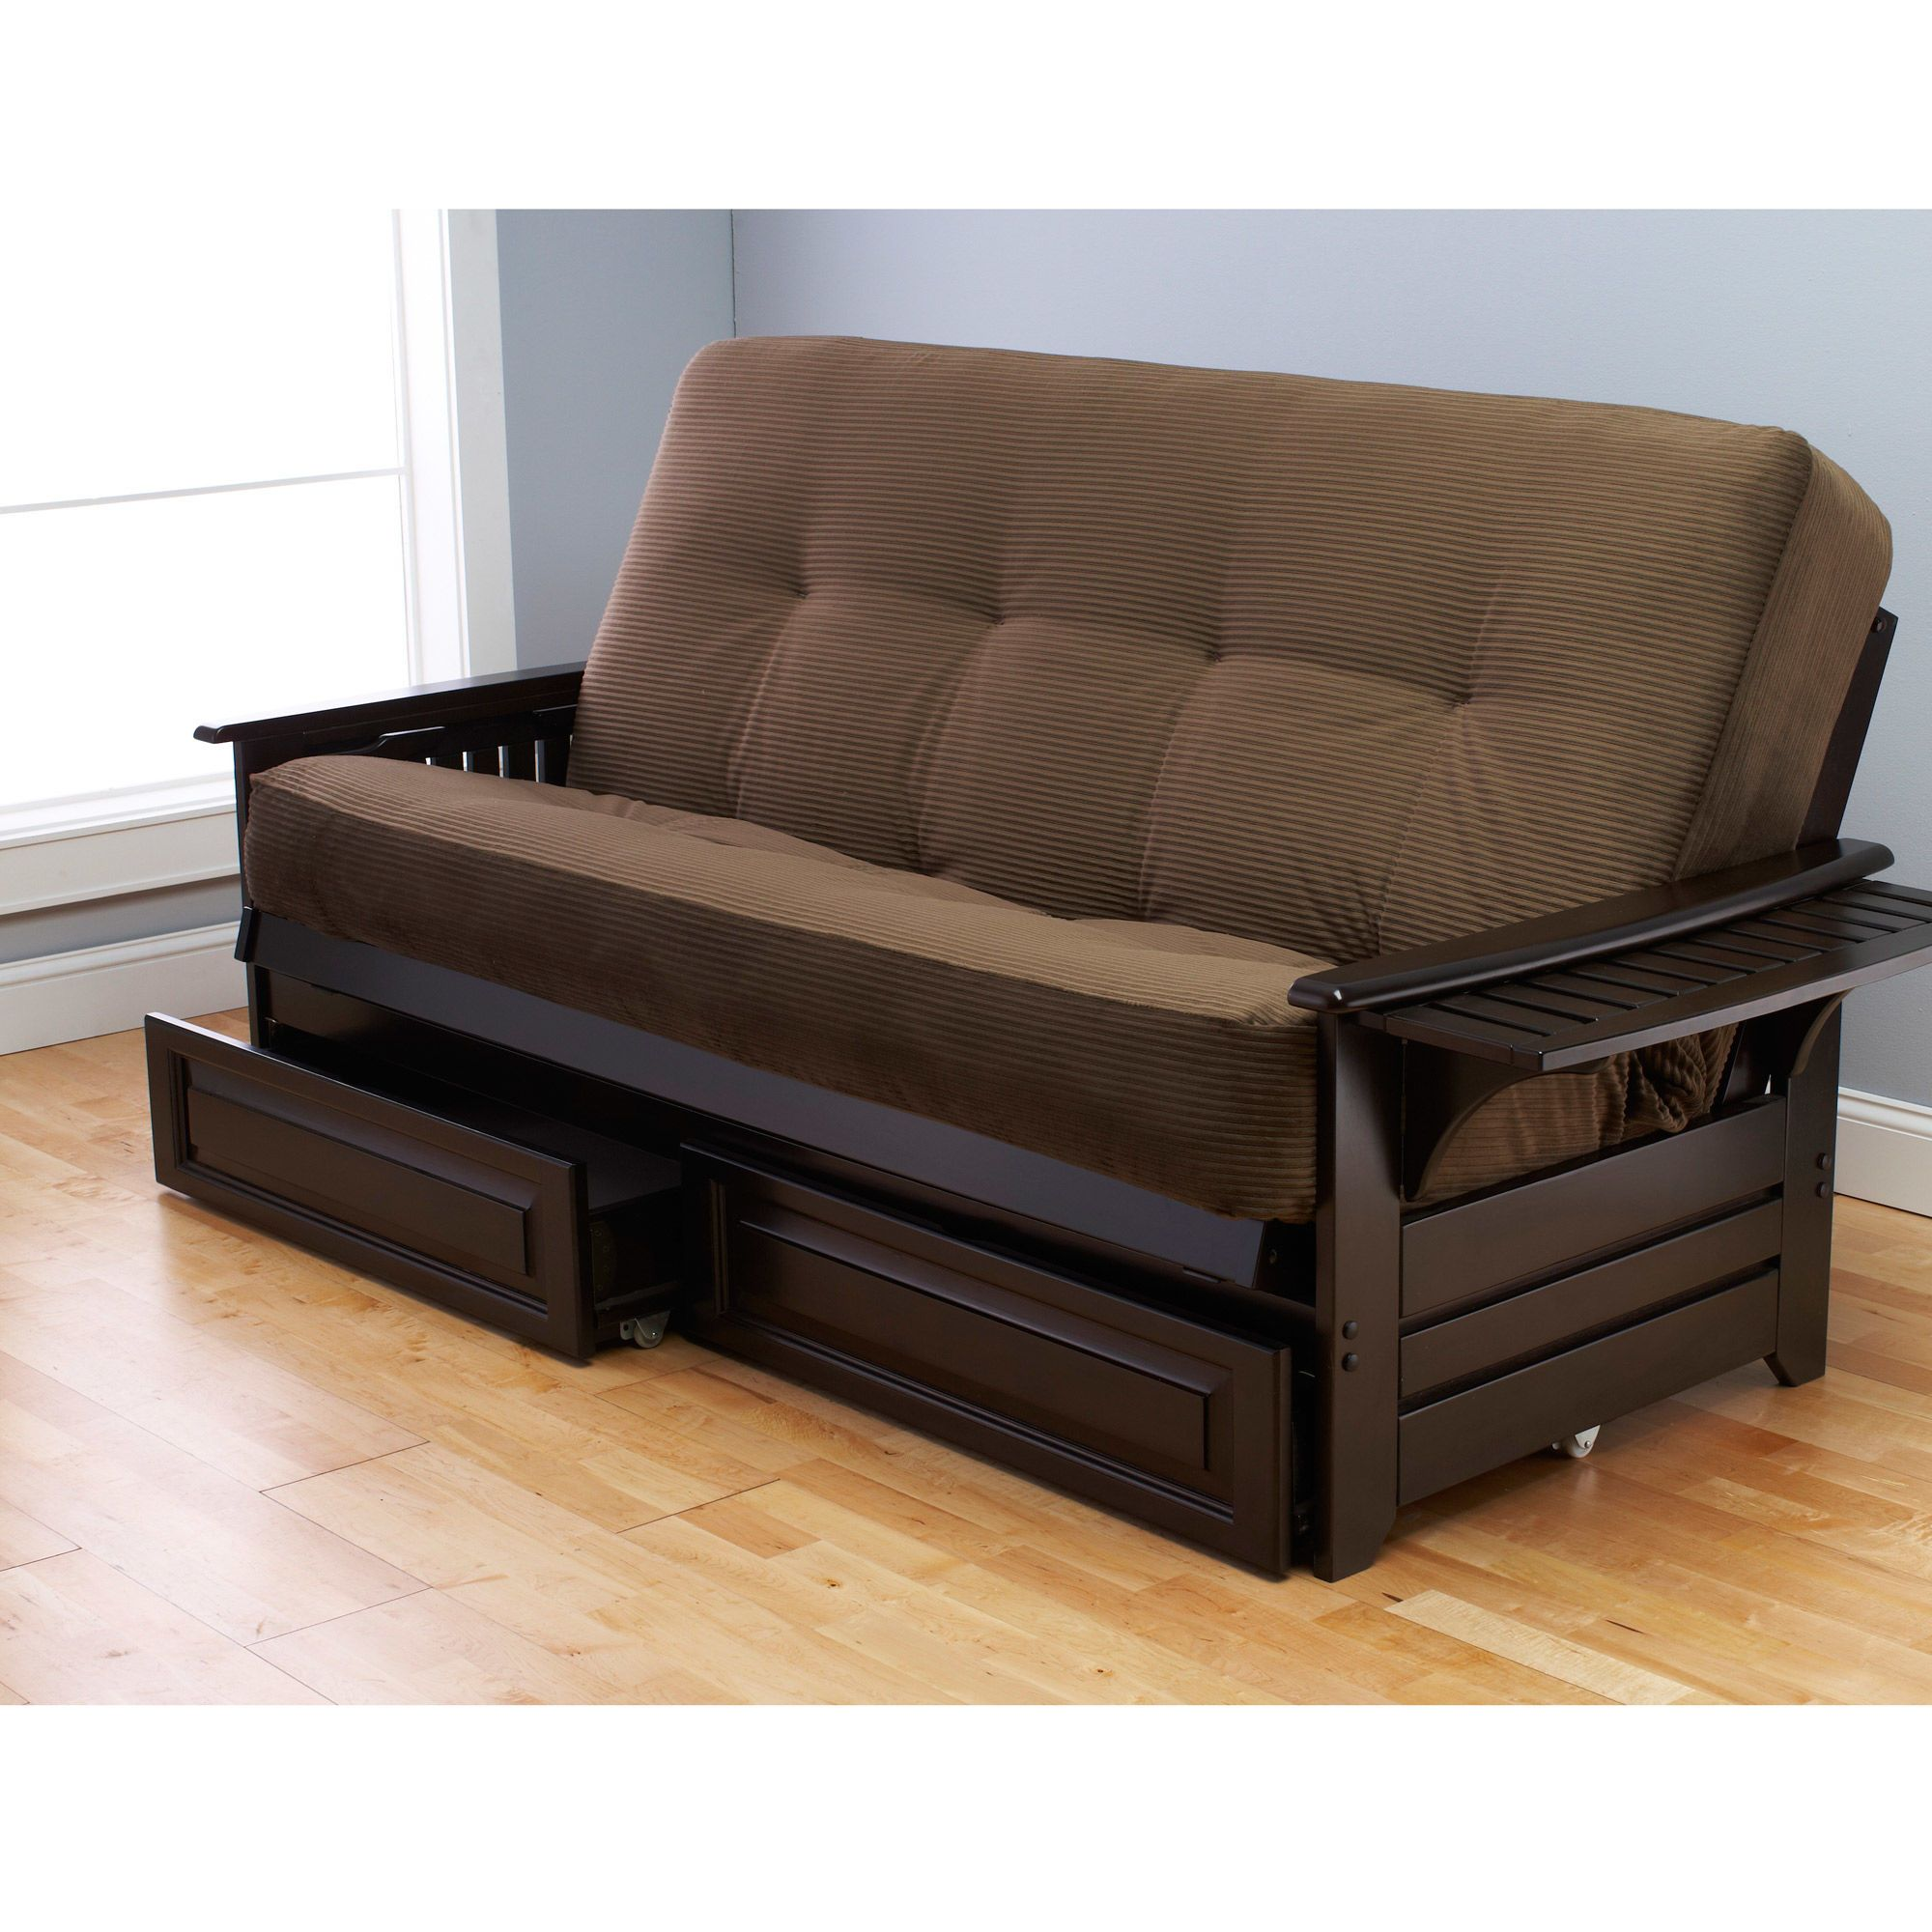 Wooden Frame Double Sofa Bed Extension